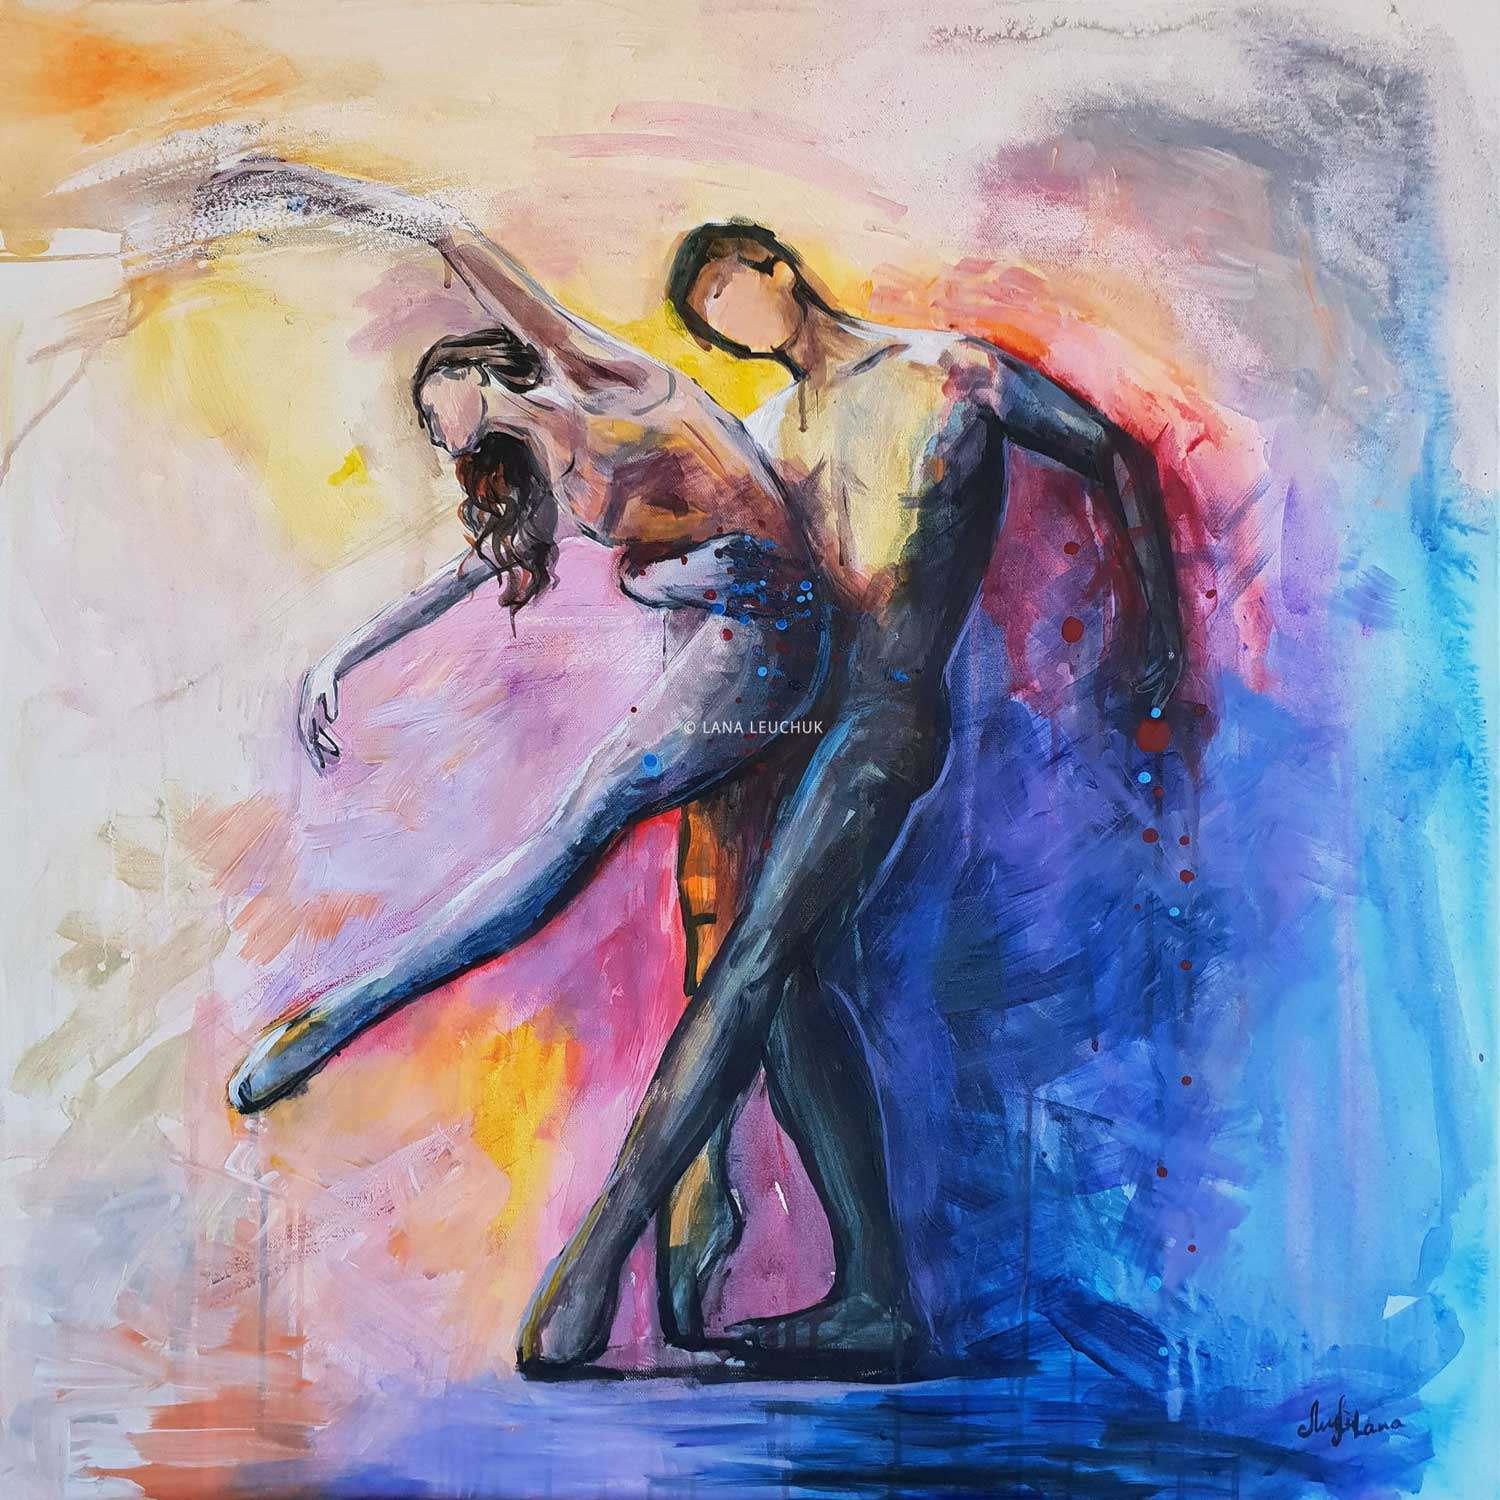 Dancing-with-a-Stranger-painting-by-Lana-Leuchuk